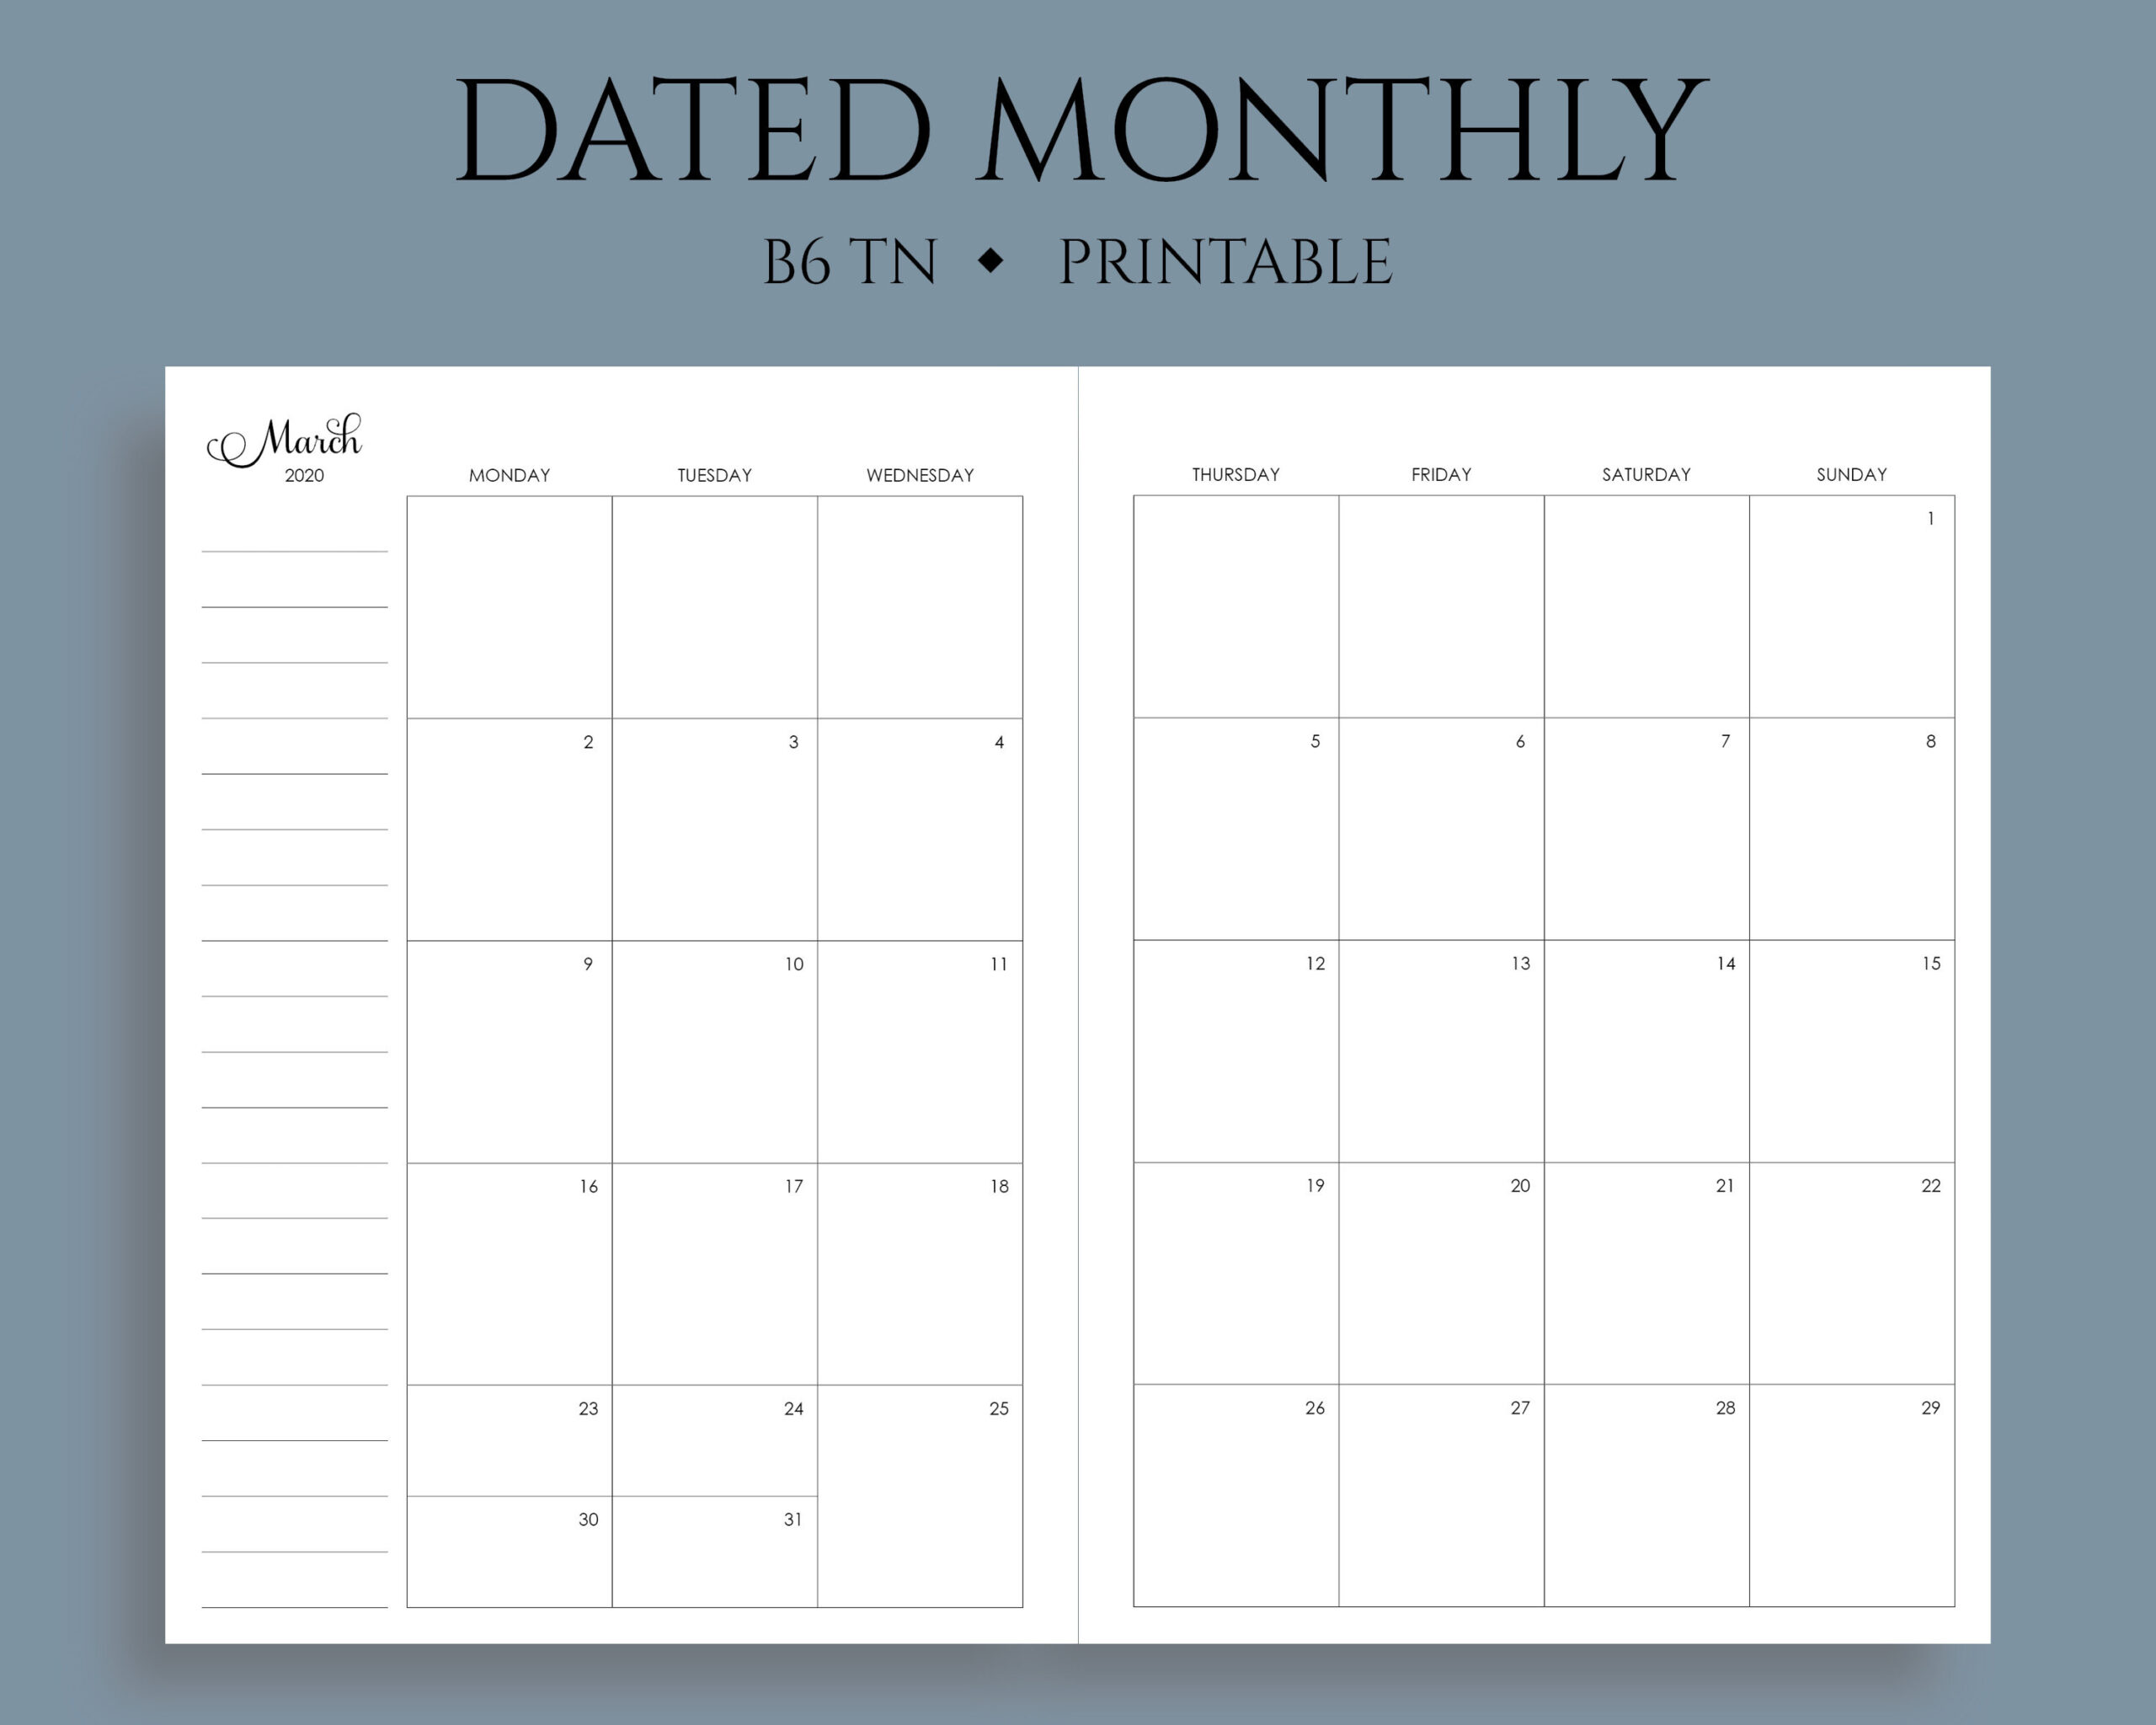 Printable Monthly Calendar Sunday To Saturday No Dates  Blank Monthly Calendar Printable Free Without Downloading